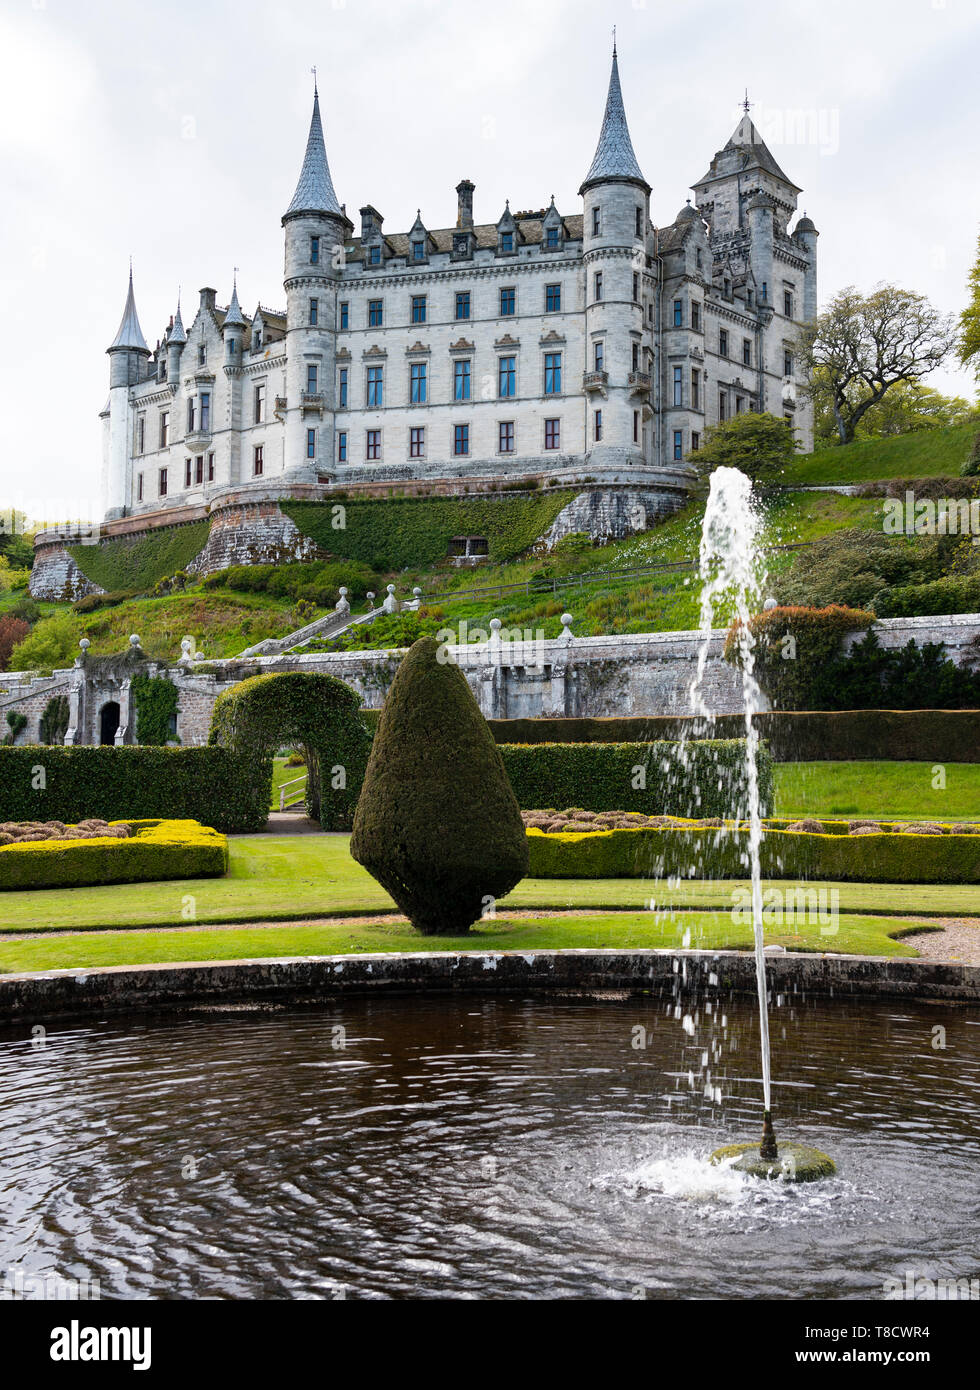 Dunrobin Castle on the North Coast 500 scenic driving route in northern Scotland, UK - Stock Image